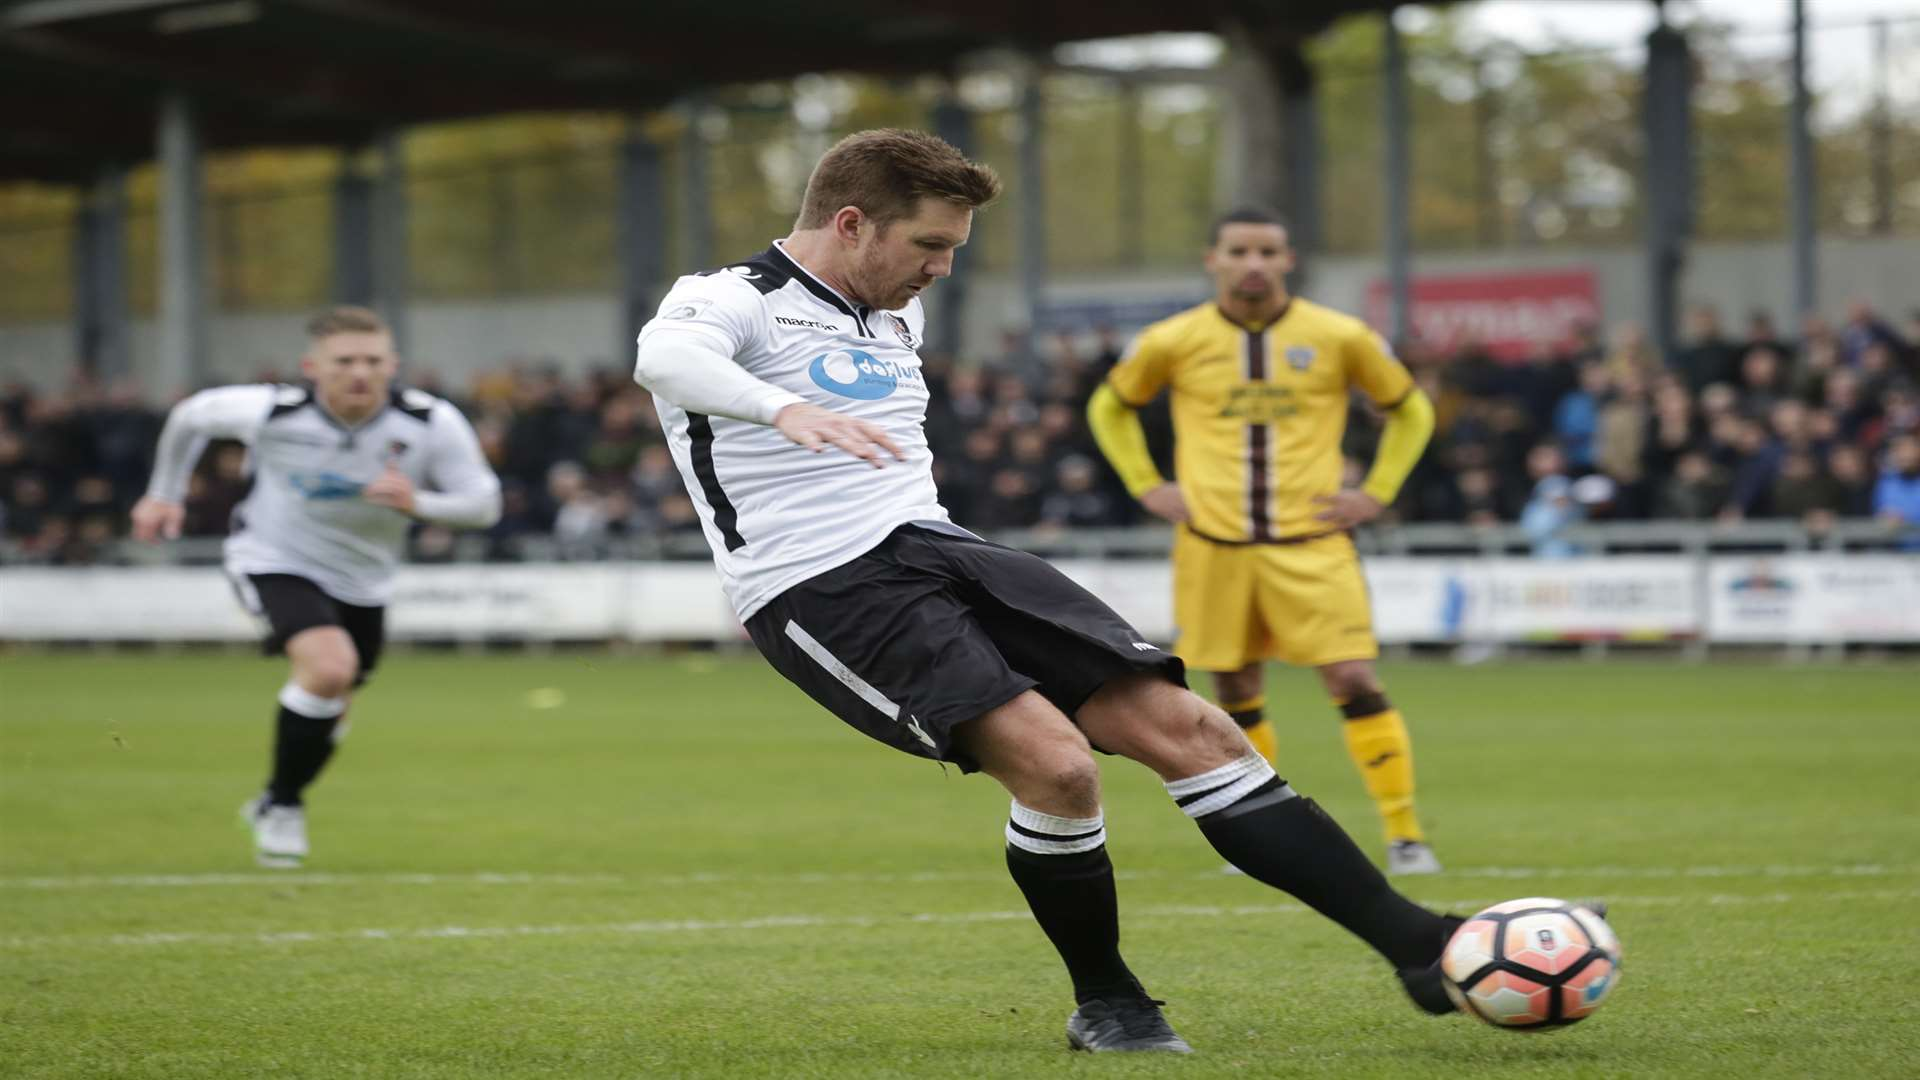 Elliot Bradbrook scores one of his 24 goals for Dartford in 2016-17 Picture: Martin Apps